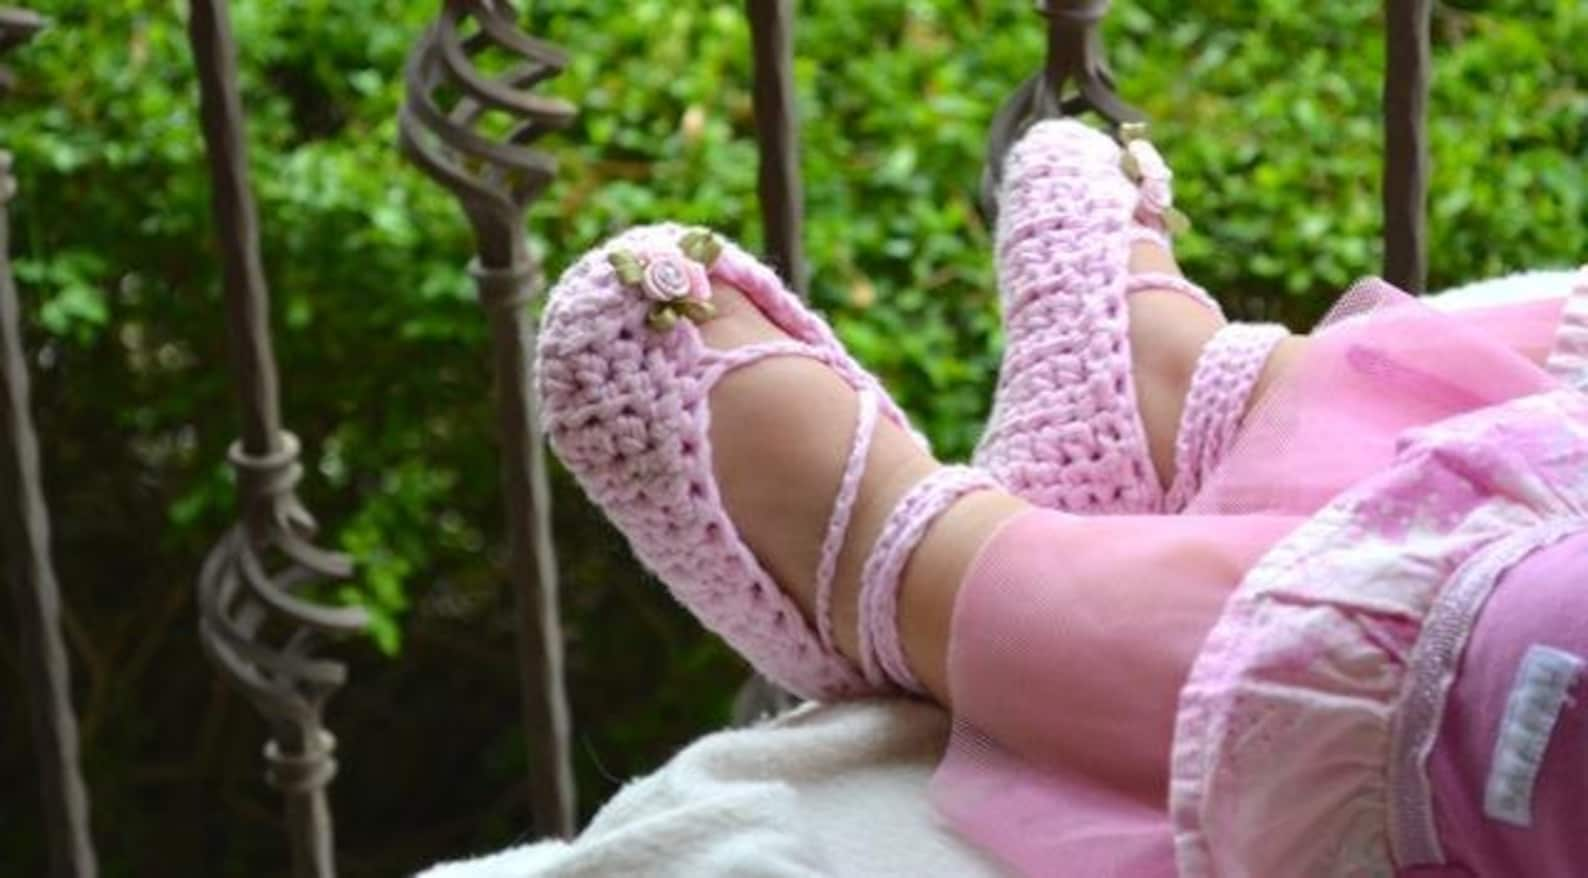 crochet pattern,crochet lace headband,ballet slippers,crochet booties,gift set,baby girls,toddler,pink,spring,ballet flats with